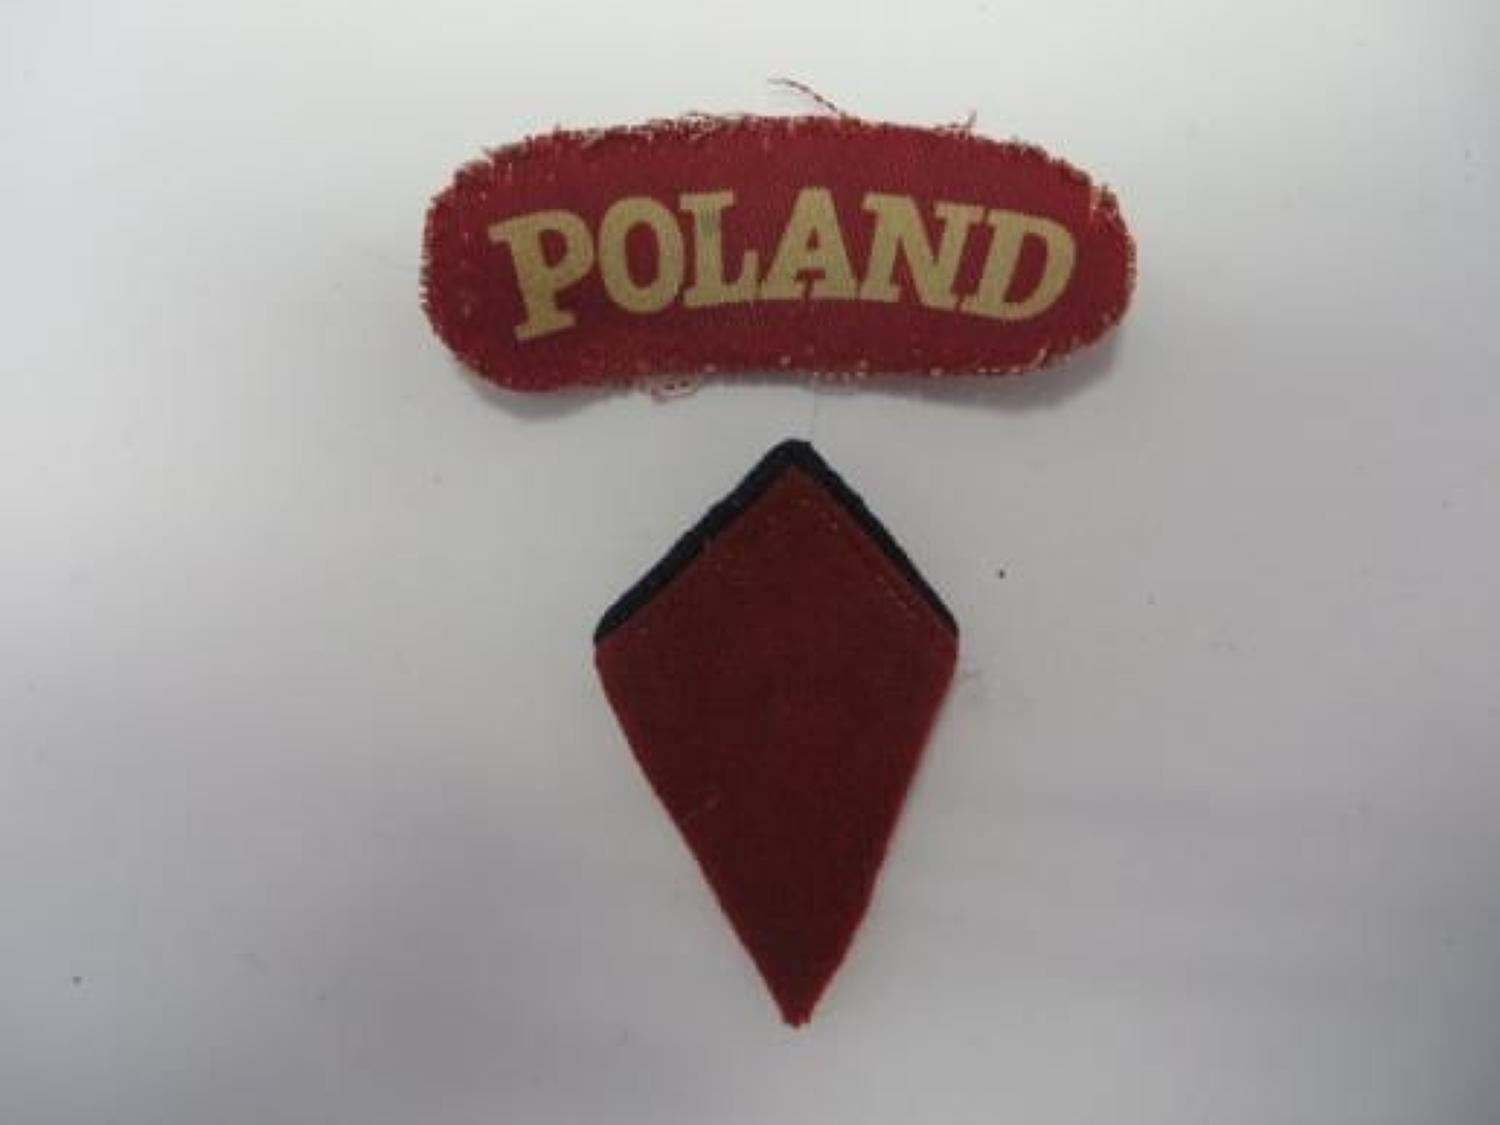 Poland Title and Collar Badge